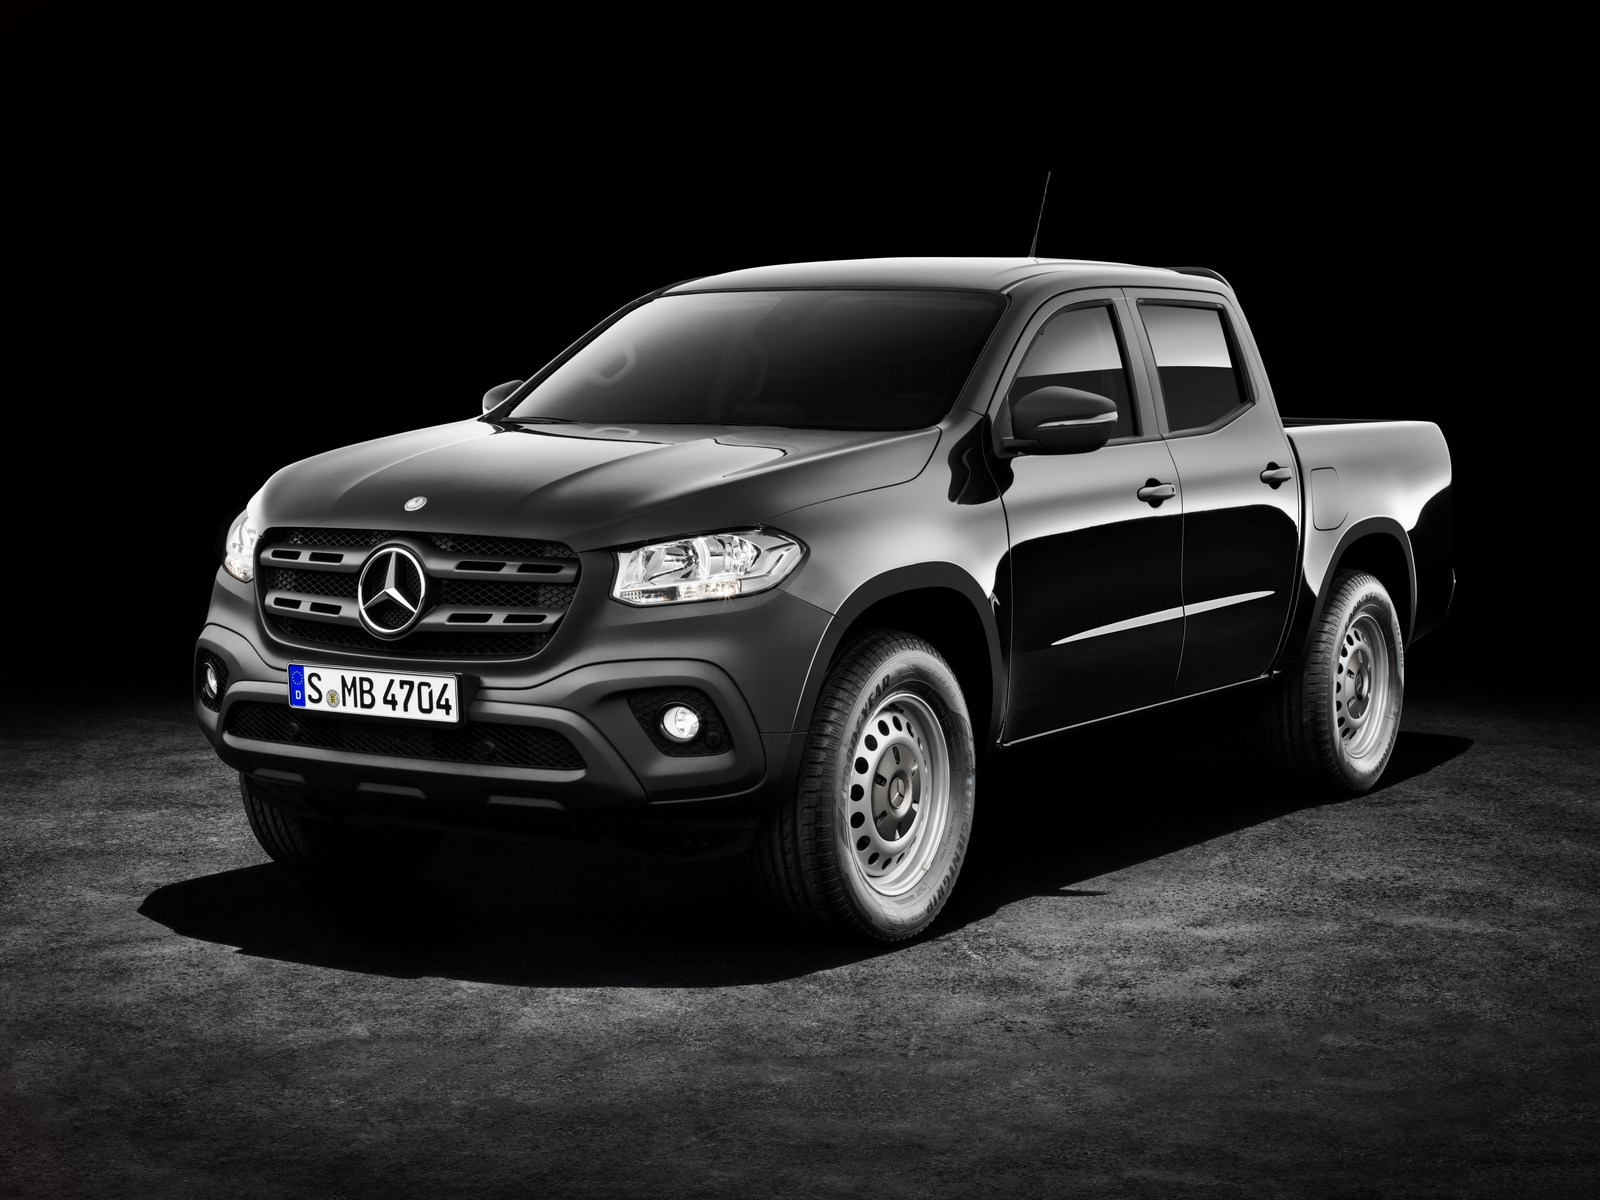 mercedes amg x class not happening chassis cab confirmed for australia autoevolution. Black Bedroom Furniture Sets. Home Design Ideas